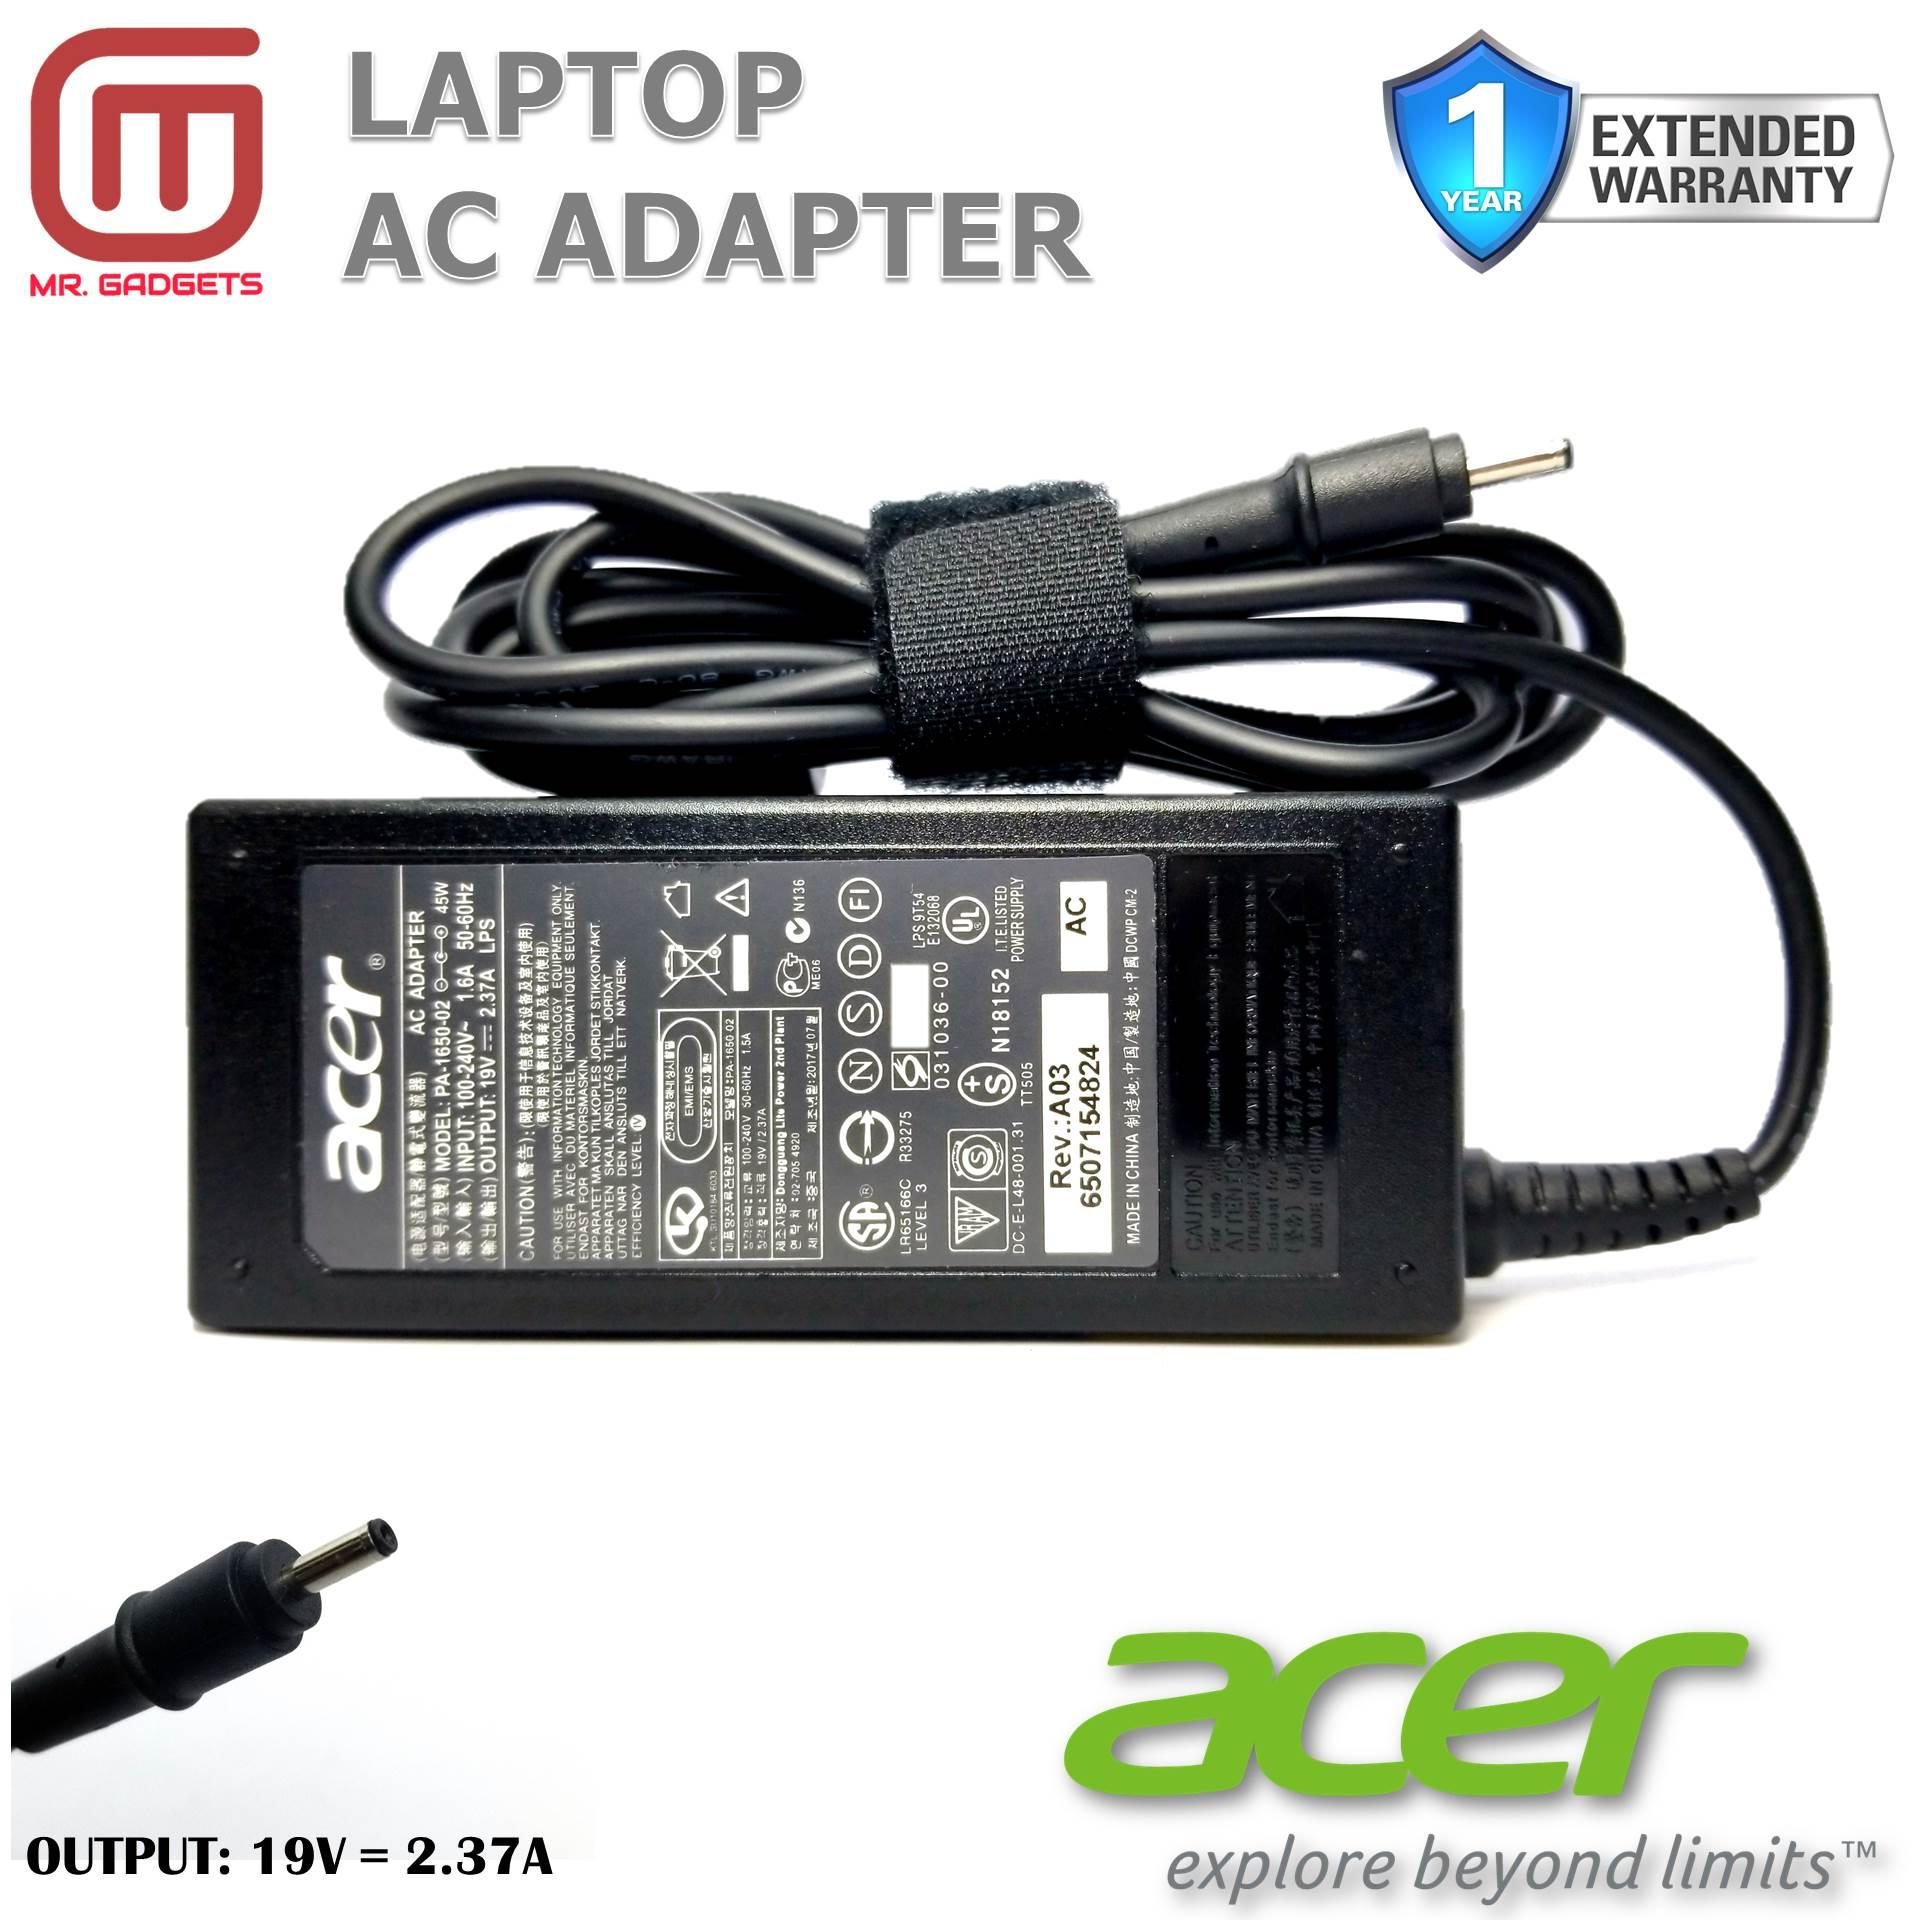 Sell Acer Aspire 11 Cheapest Best Quality Ph Store Keyboard Laptop E3 112 Es1 131 Es11 111 132 Php 529